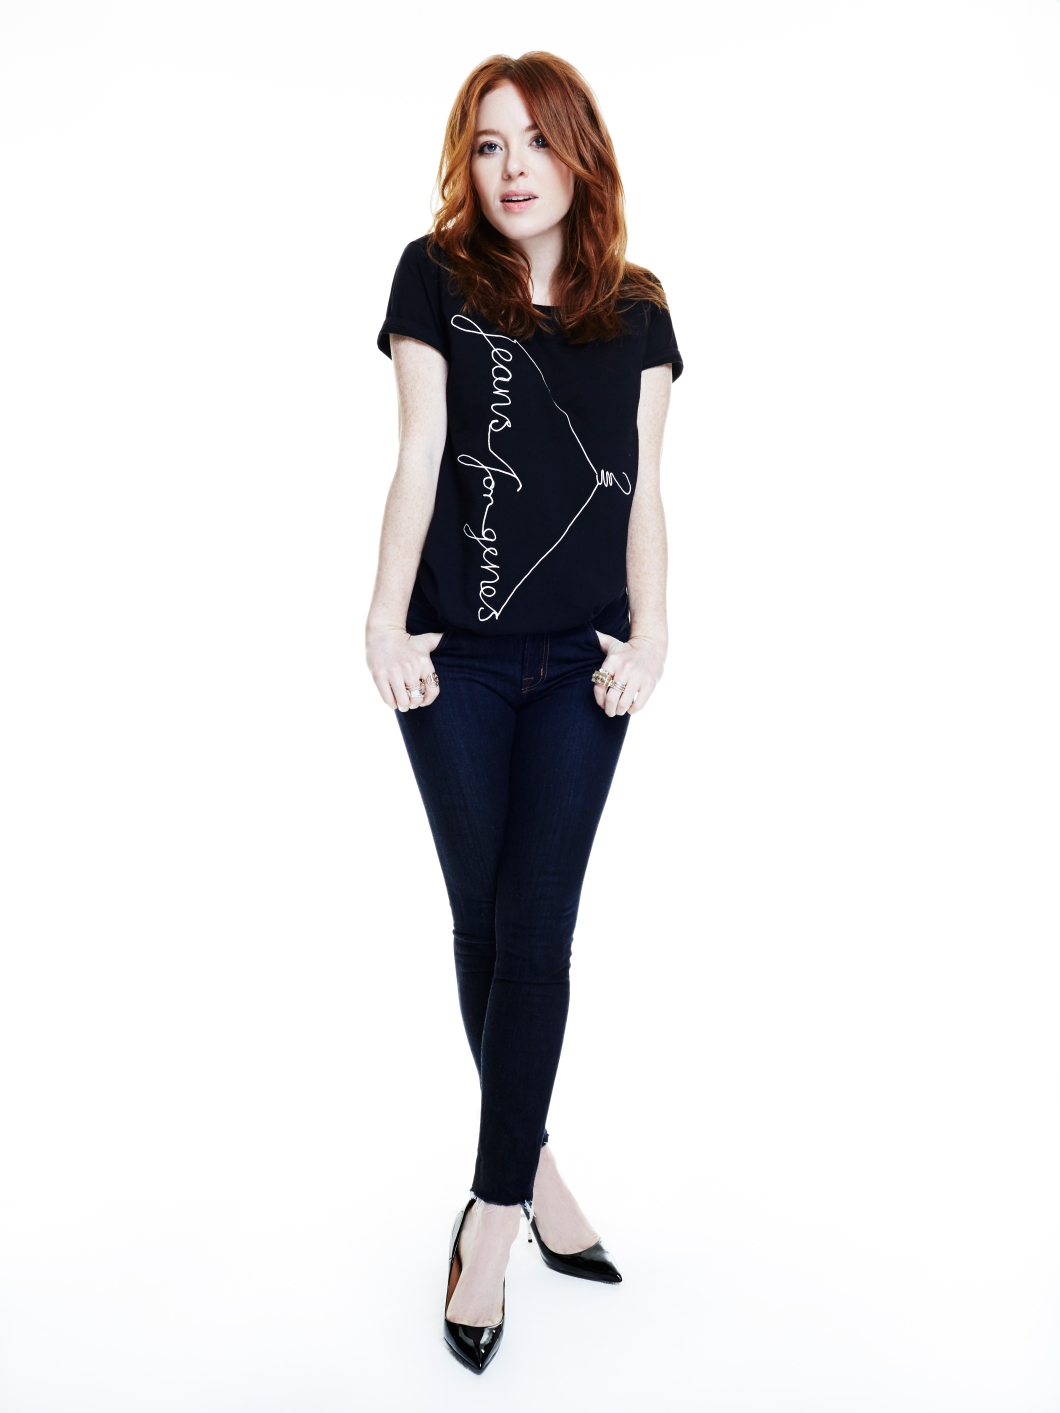 Angela Scanlon in black Jeans for Genes fashion t-shirt